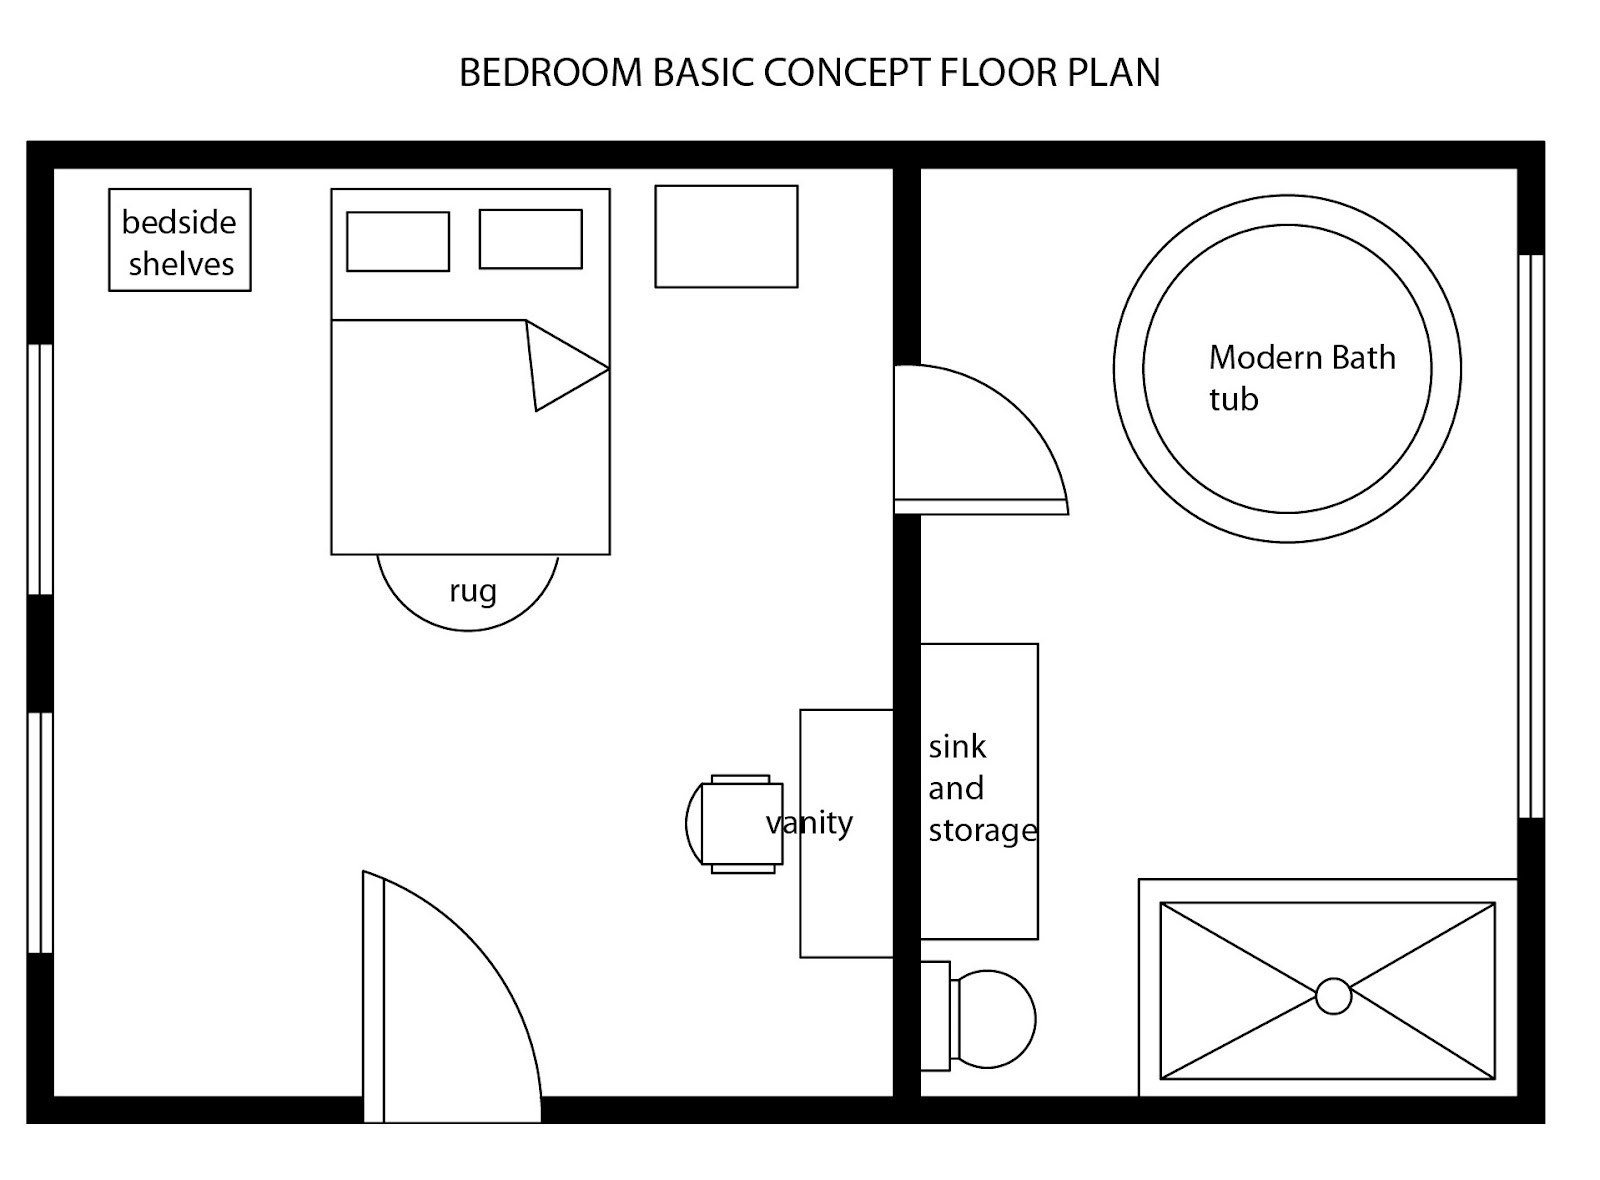 Interior design decor modern bedroom basic floor plan for Simple two bedroom apartment design